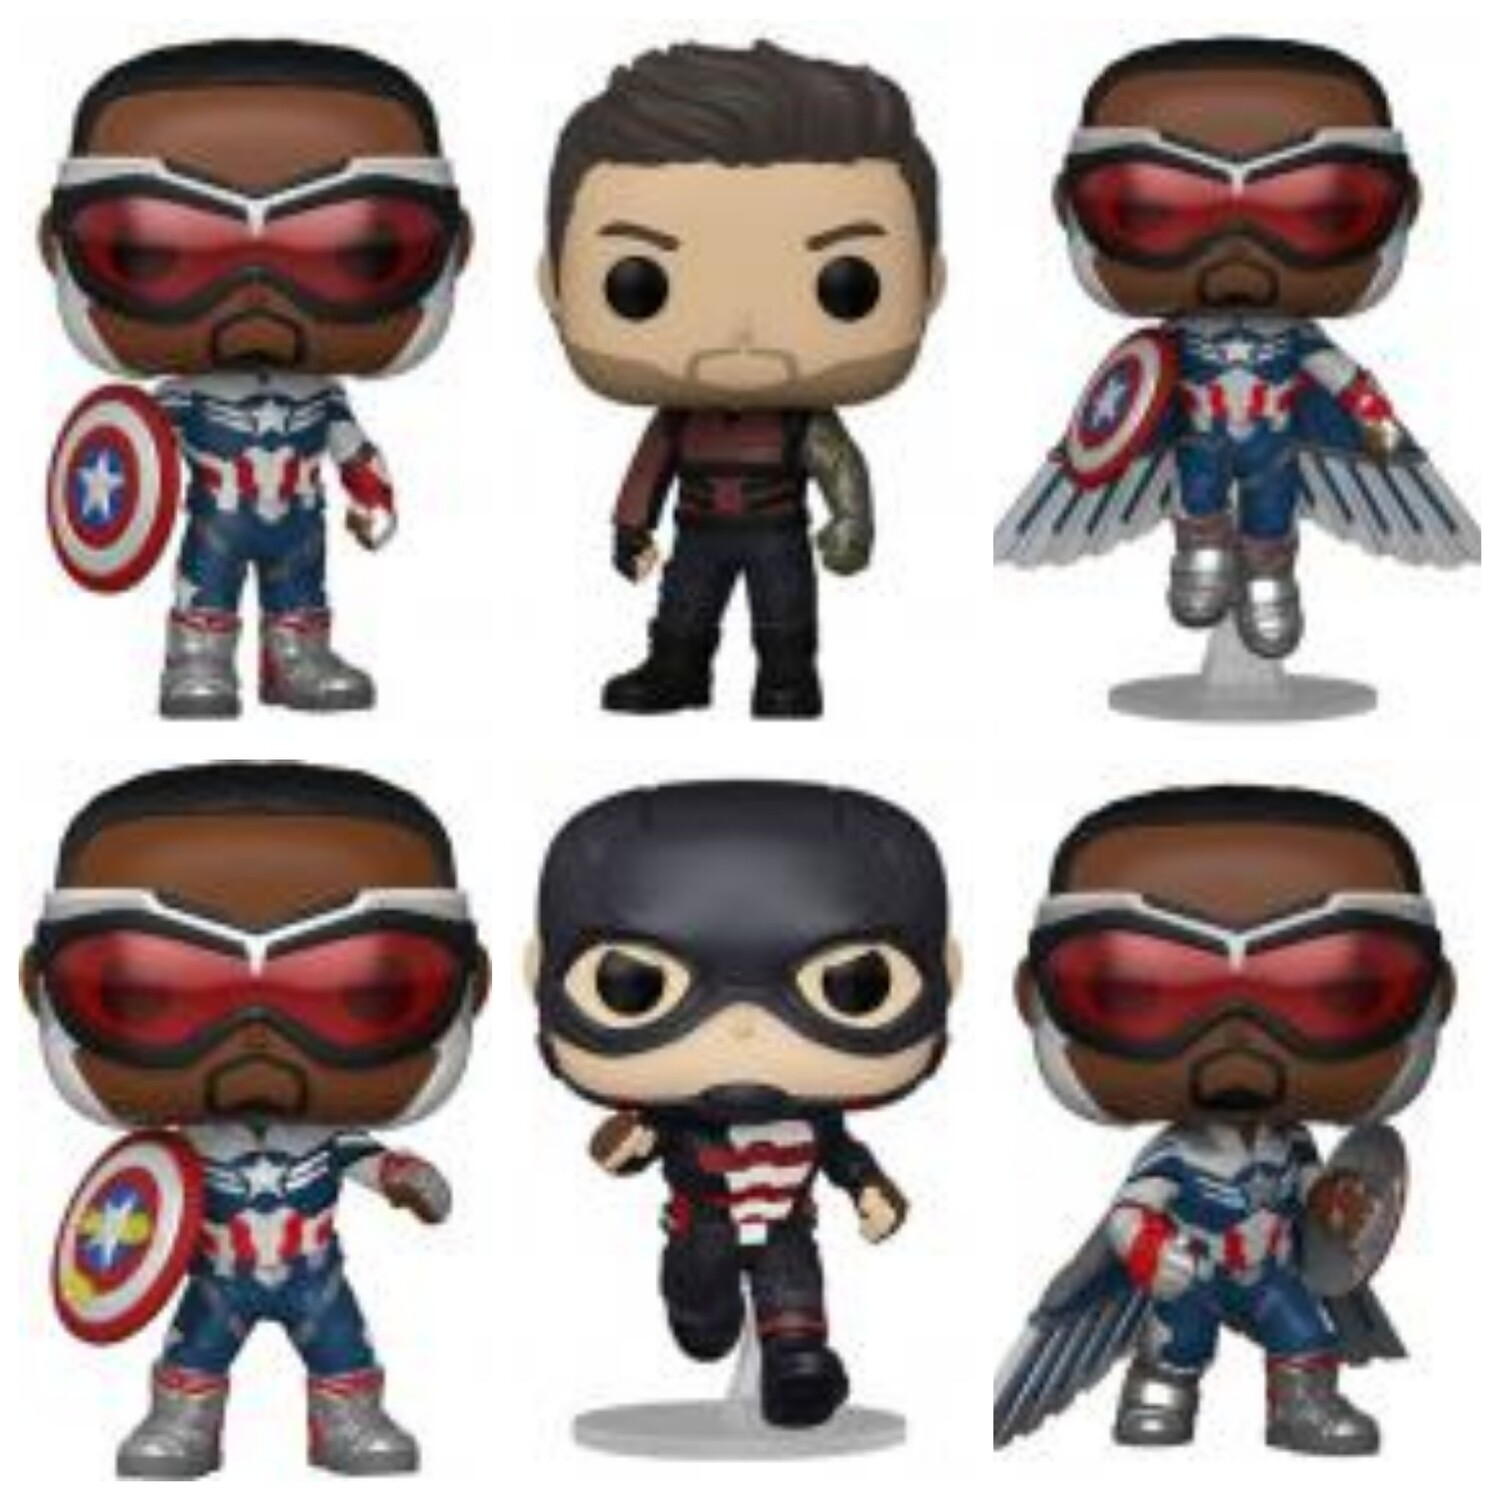 The Falcon and the Winter Soldier Pop! Vinyl Figure